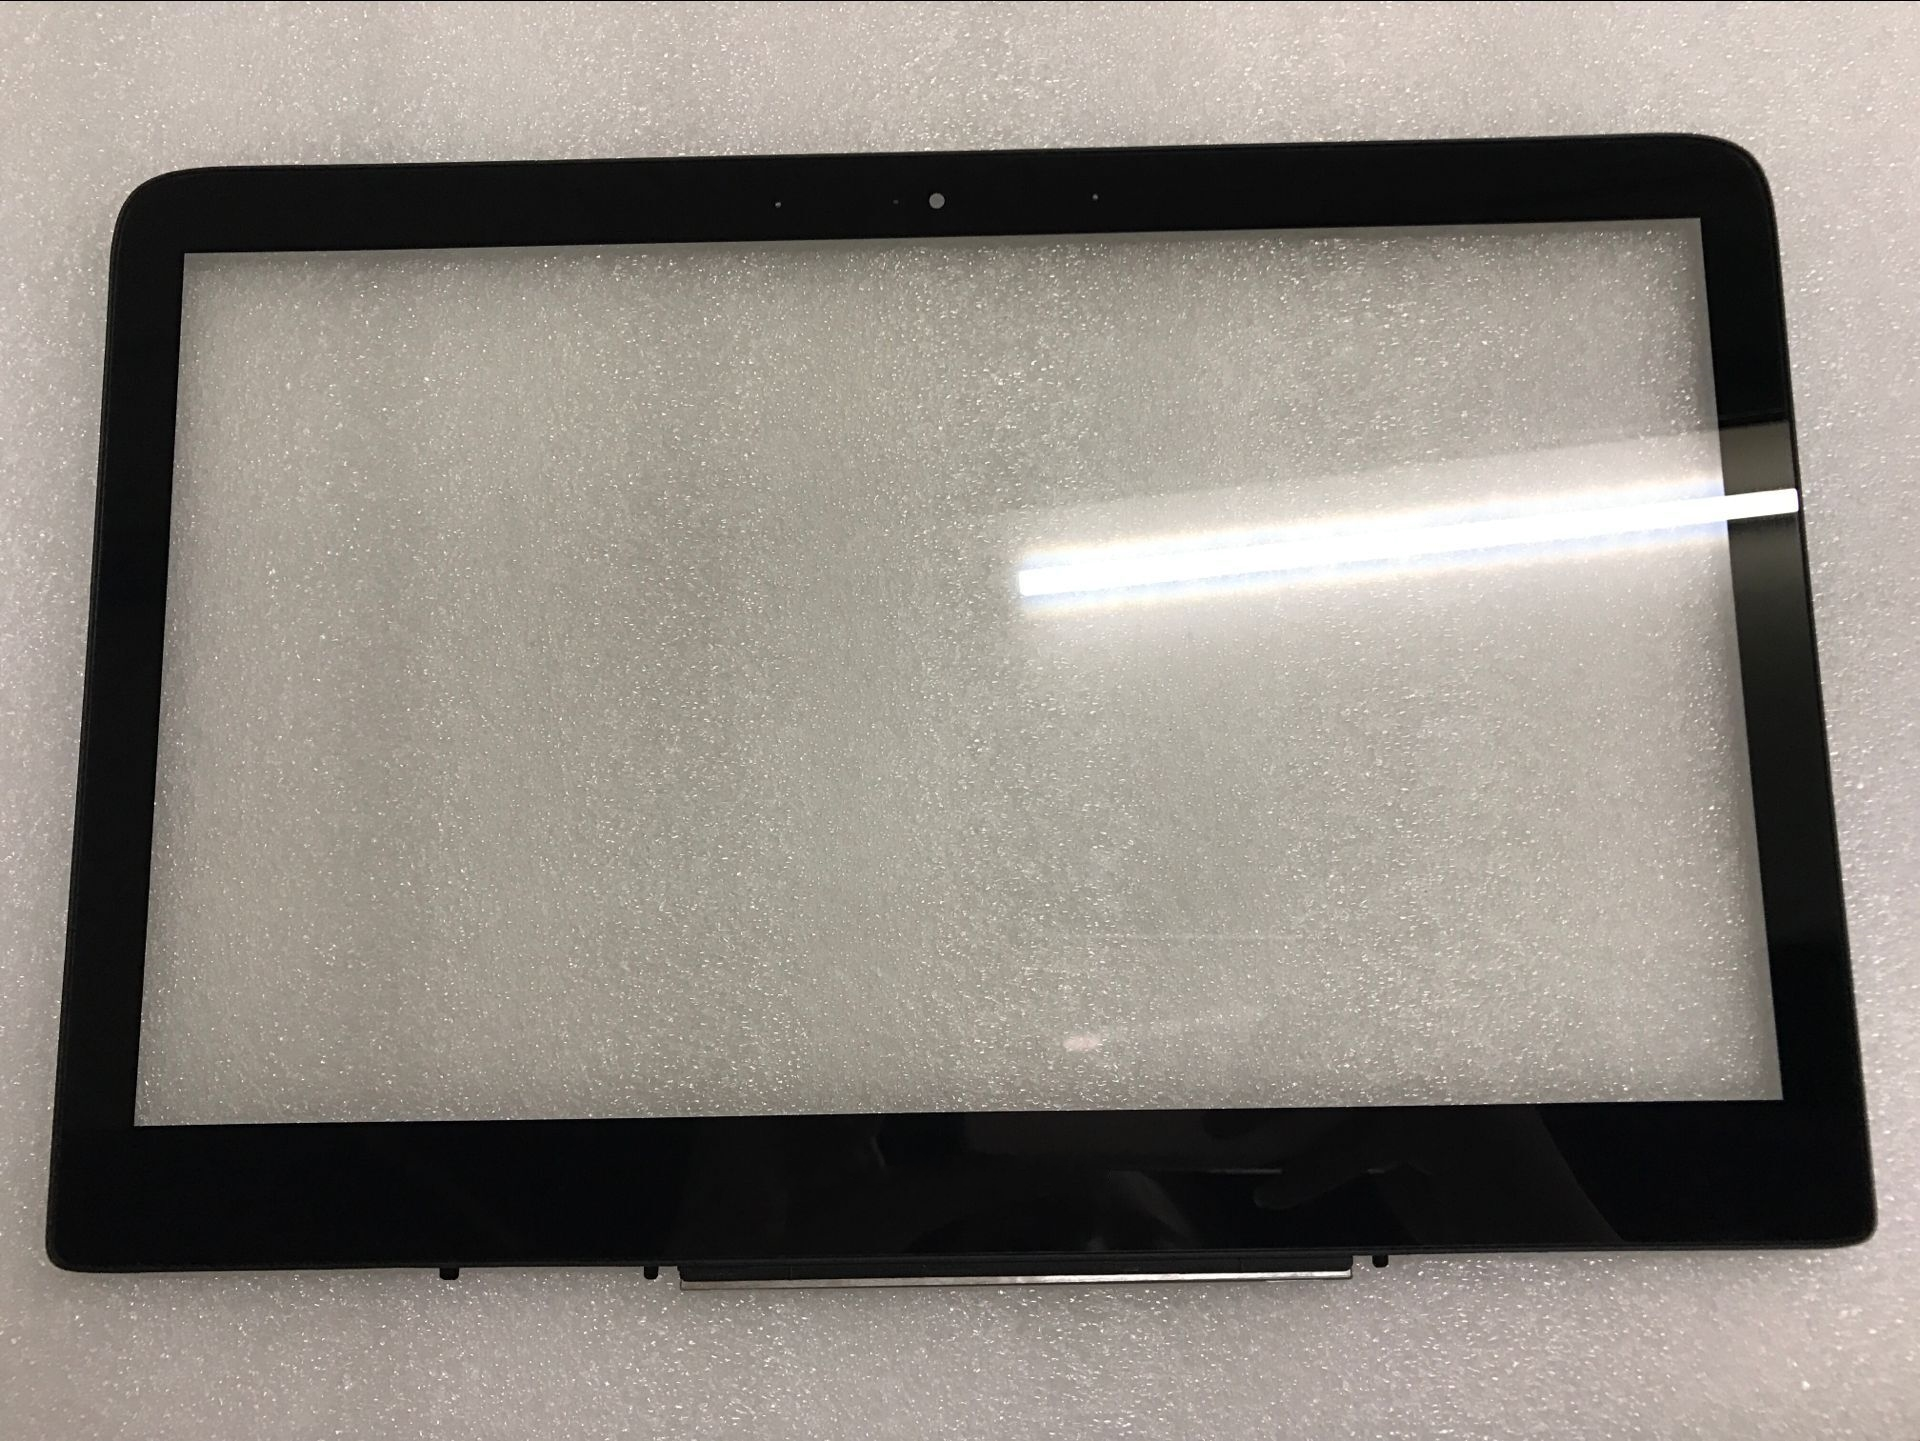 Touch Screen Glass Digitizer For HP Pavilion x360 13-s104nl with bezle+BOARD high quality lcds touch srceen for hp pavilion x360 13 a010dx touch screen digitizer replacement free shipping